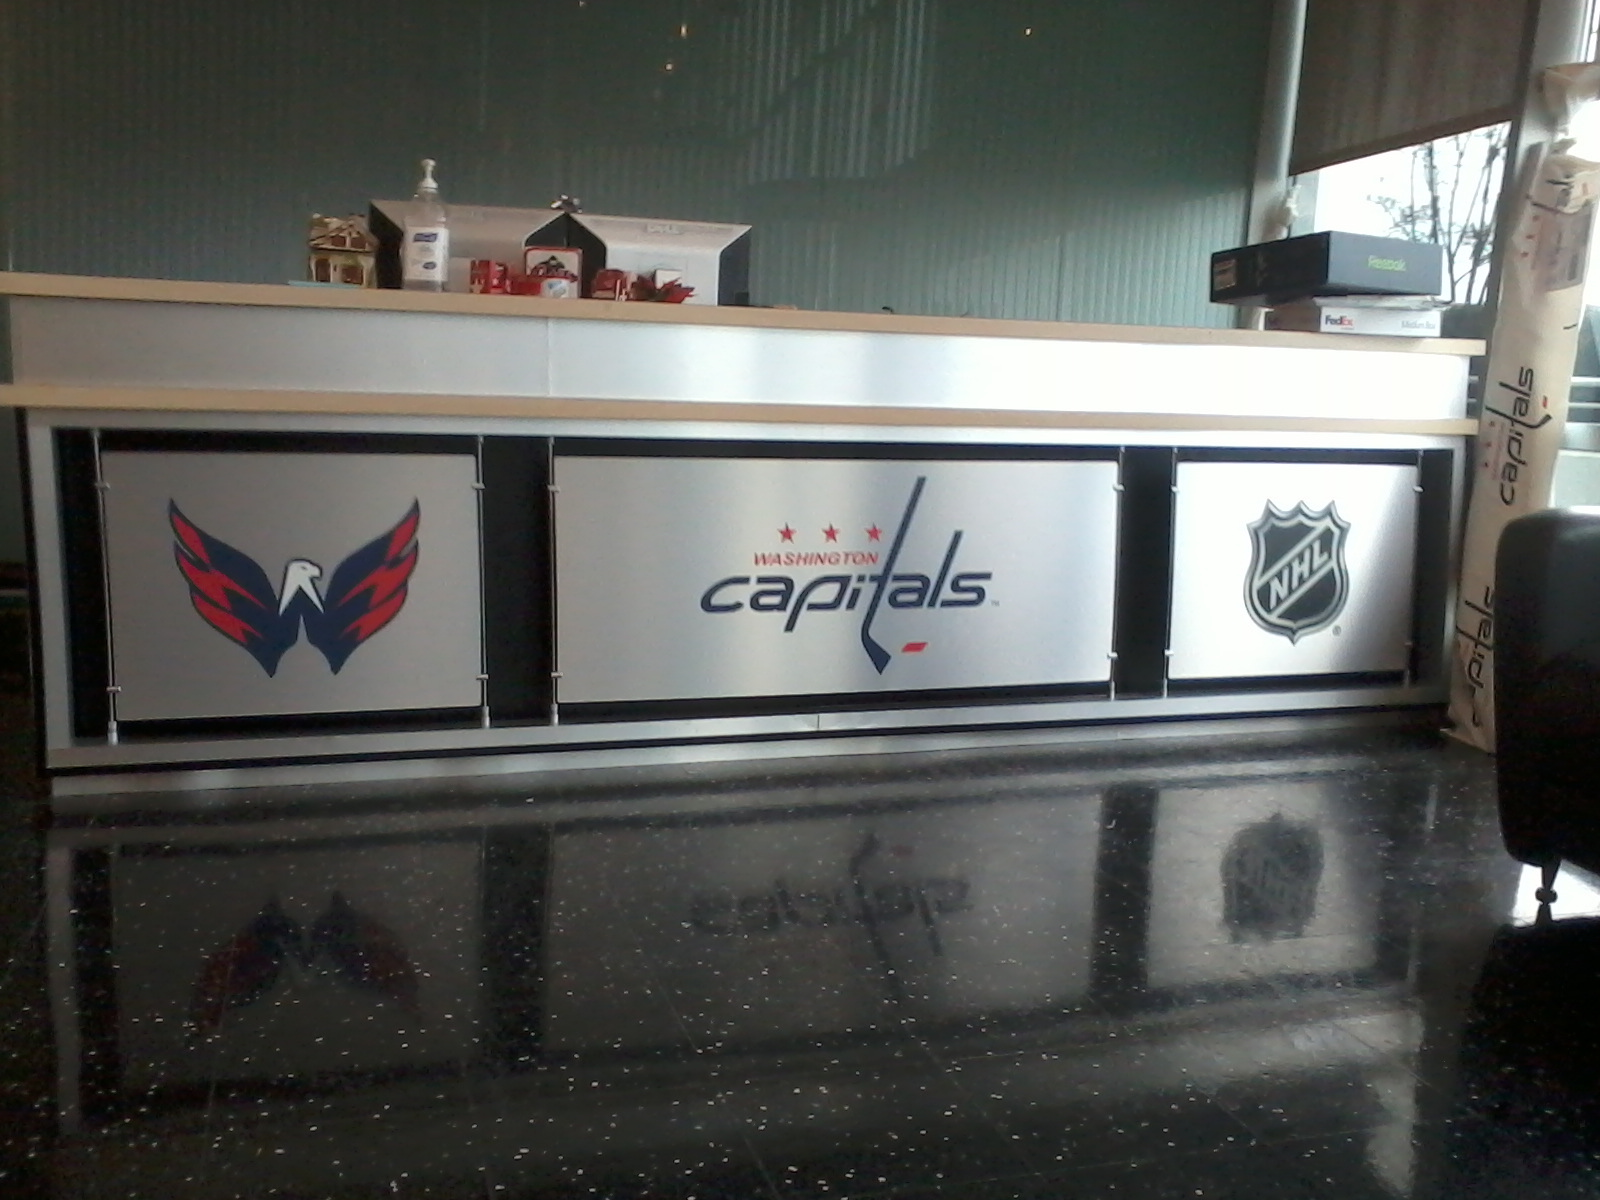 Washington Capitals.jpg